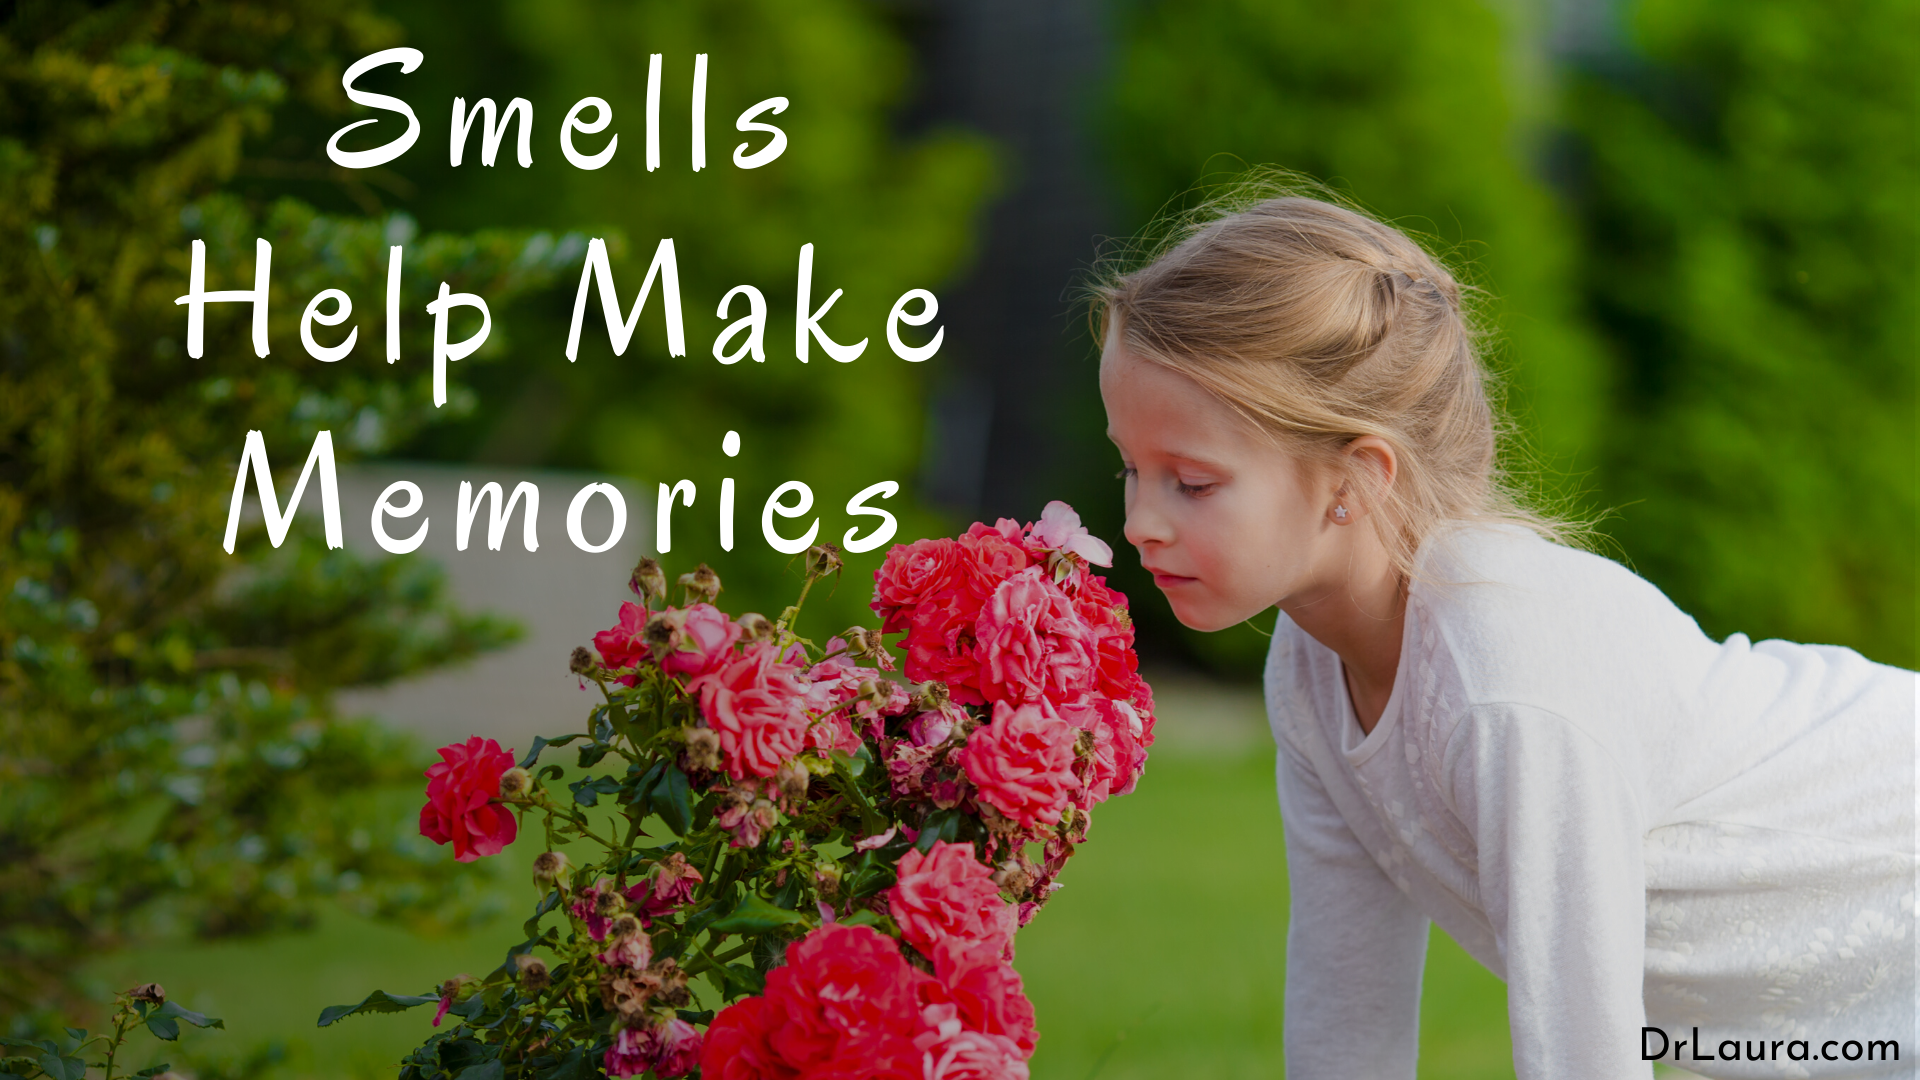 Email of the Day: Smells Help Make Memories